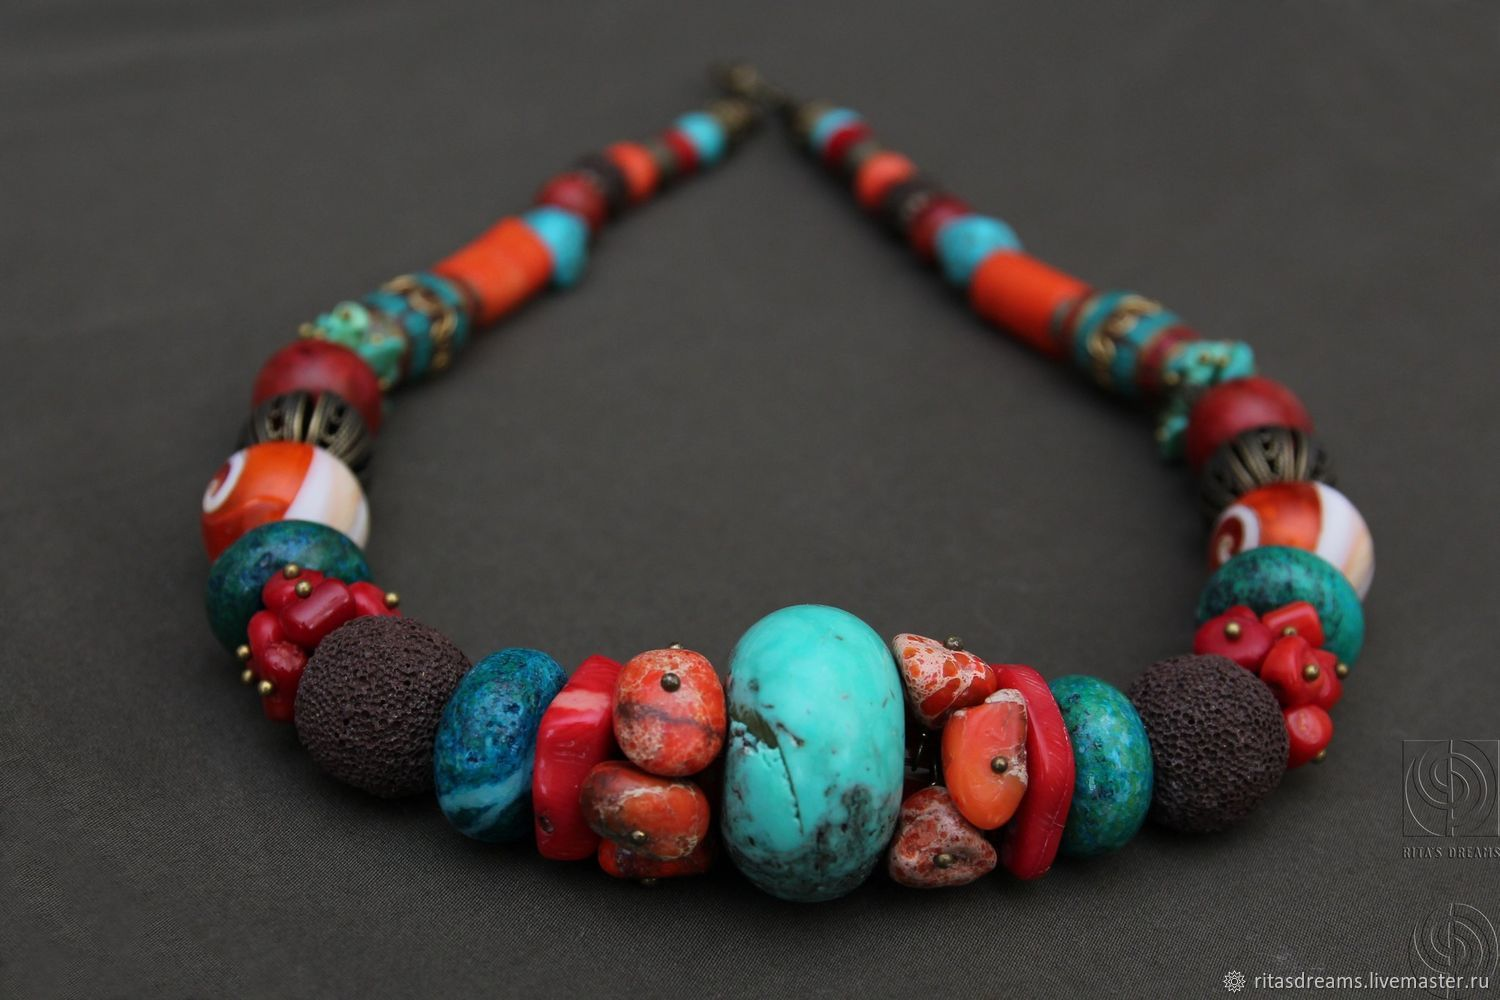 Bright, large beads created from gorgeous natural stones: red and orange coral, turquoise, howlite, chrysocolla, Jasper, shell, and volcanic lava, Tibetan beads handmade.